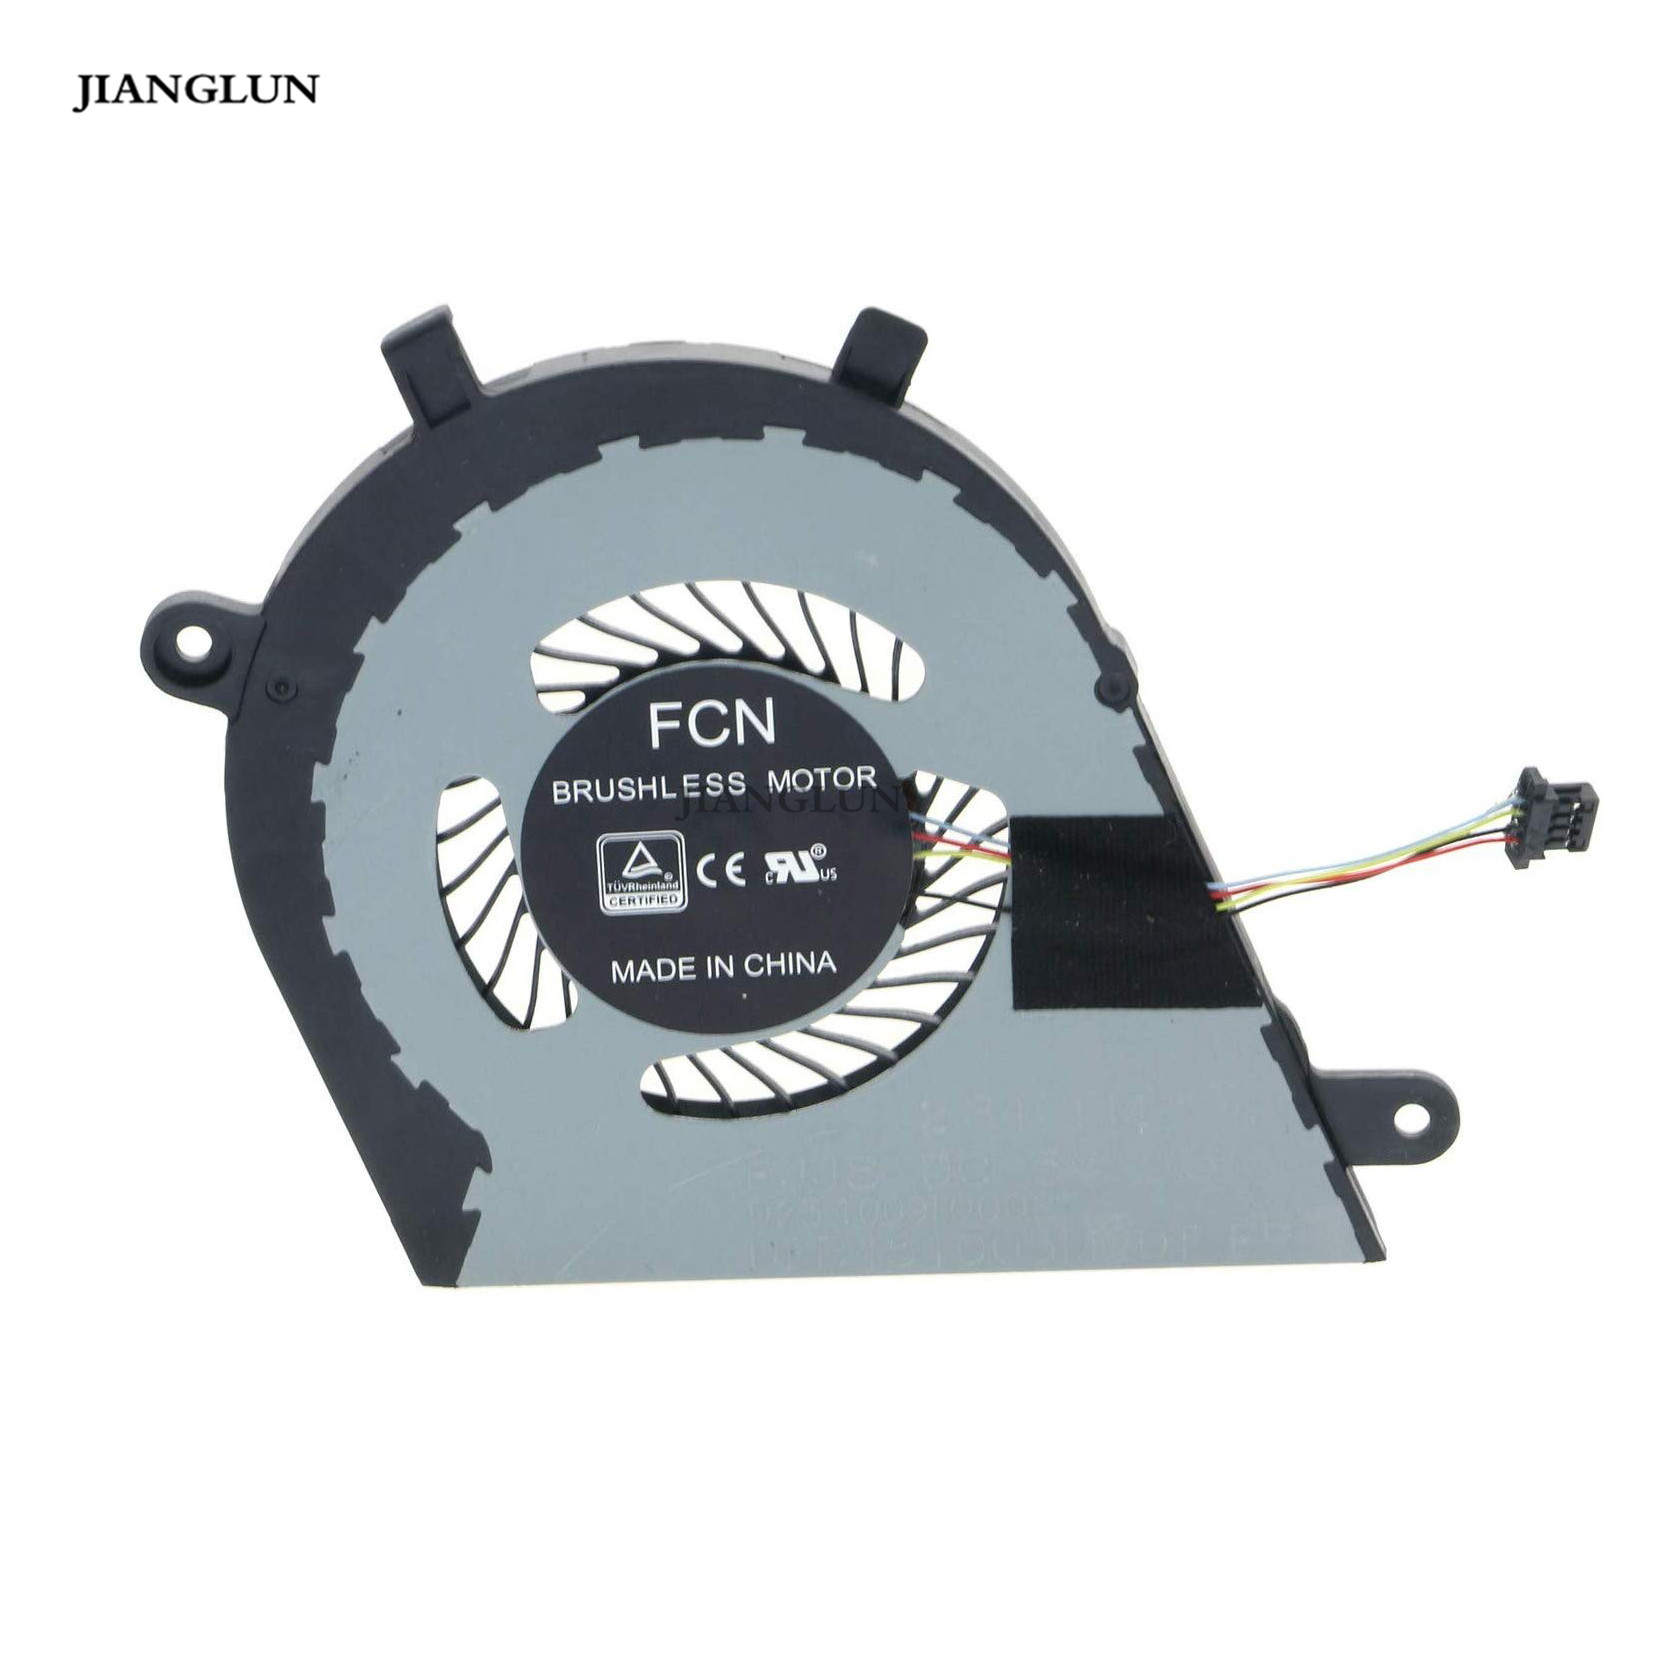 JIANGLUN Laptop CPU Cooling Fan For Dell Inspiron 13 7370 7373 I7373 DJFK0